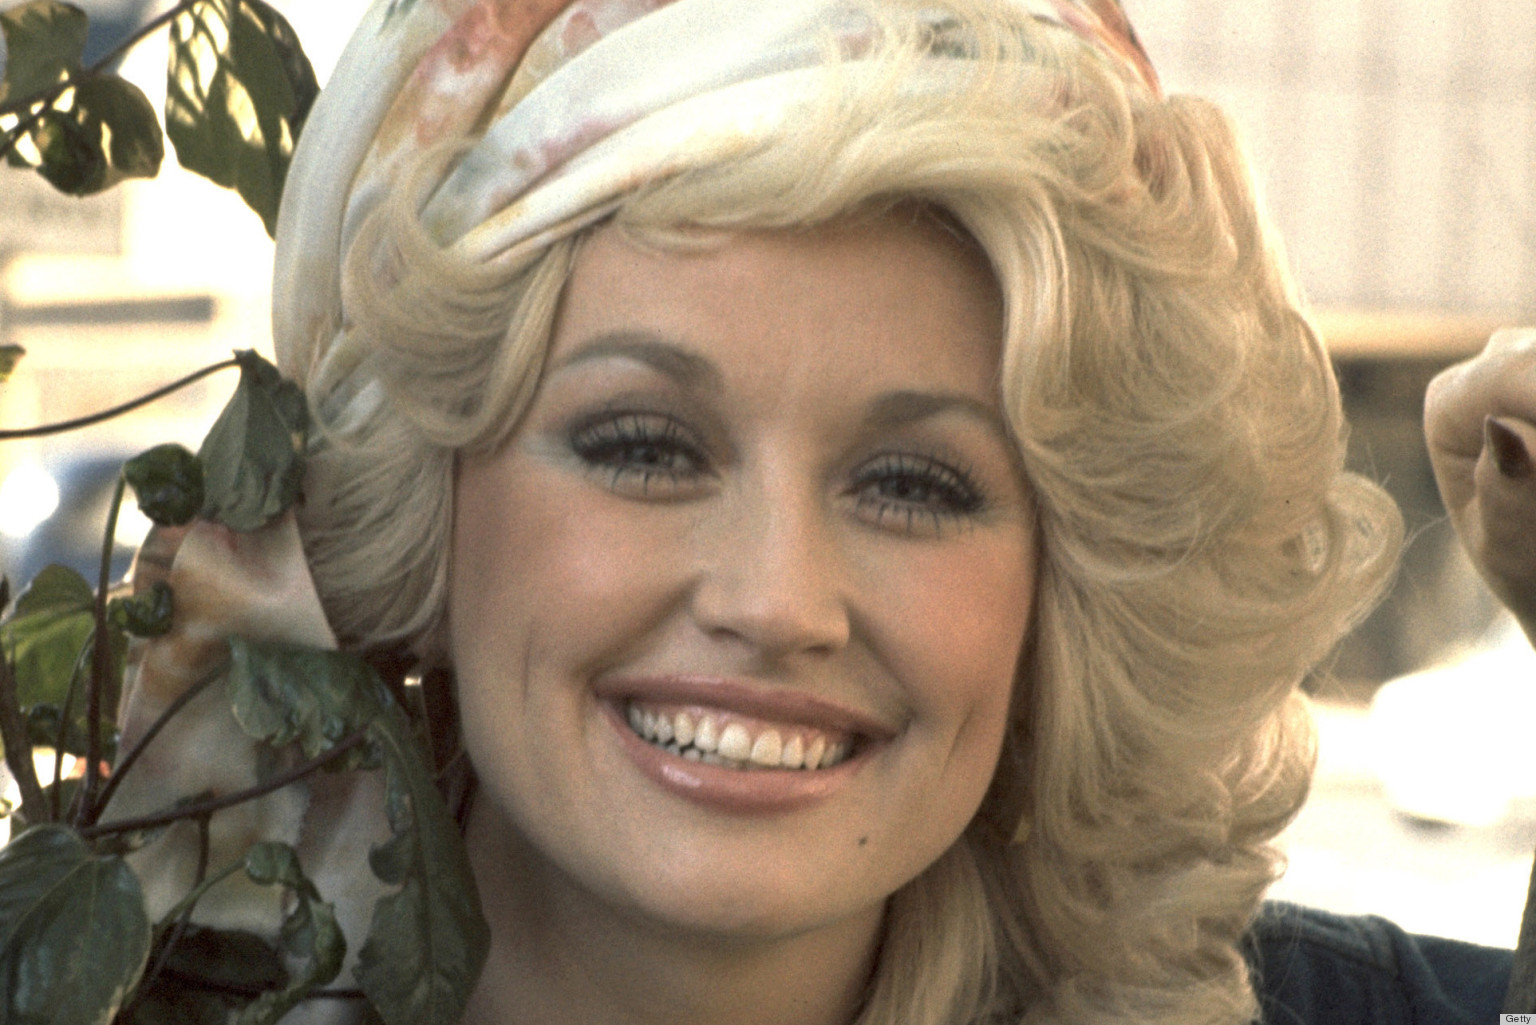 Dolly Parton: Dolly Parton's Backwoods Beauty Tips: 'I Used A Burnt